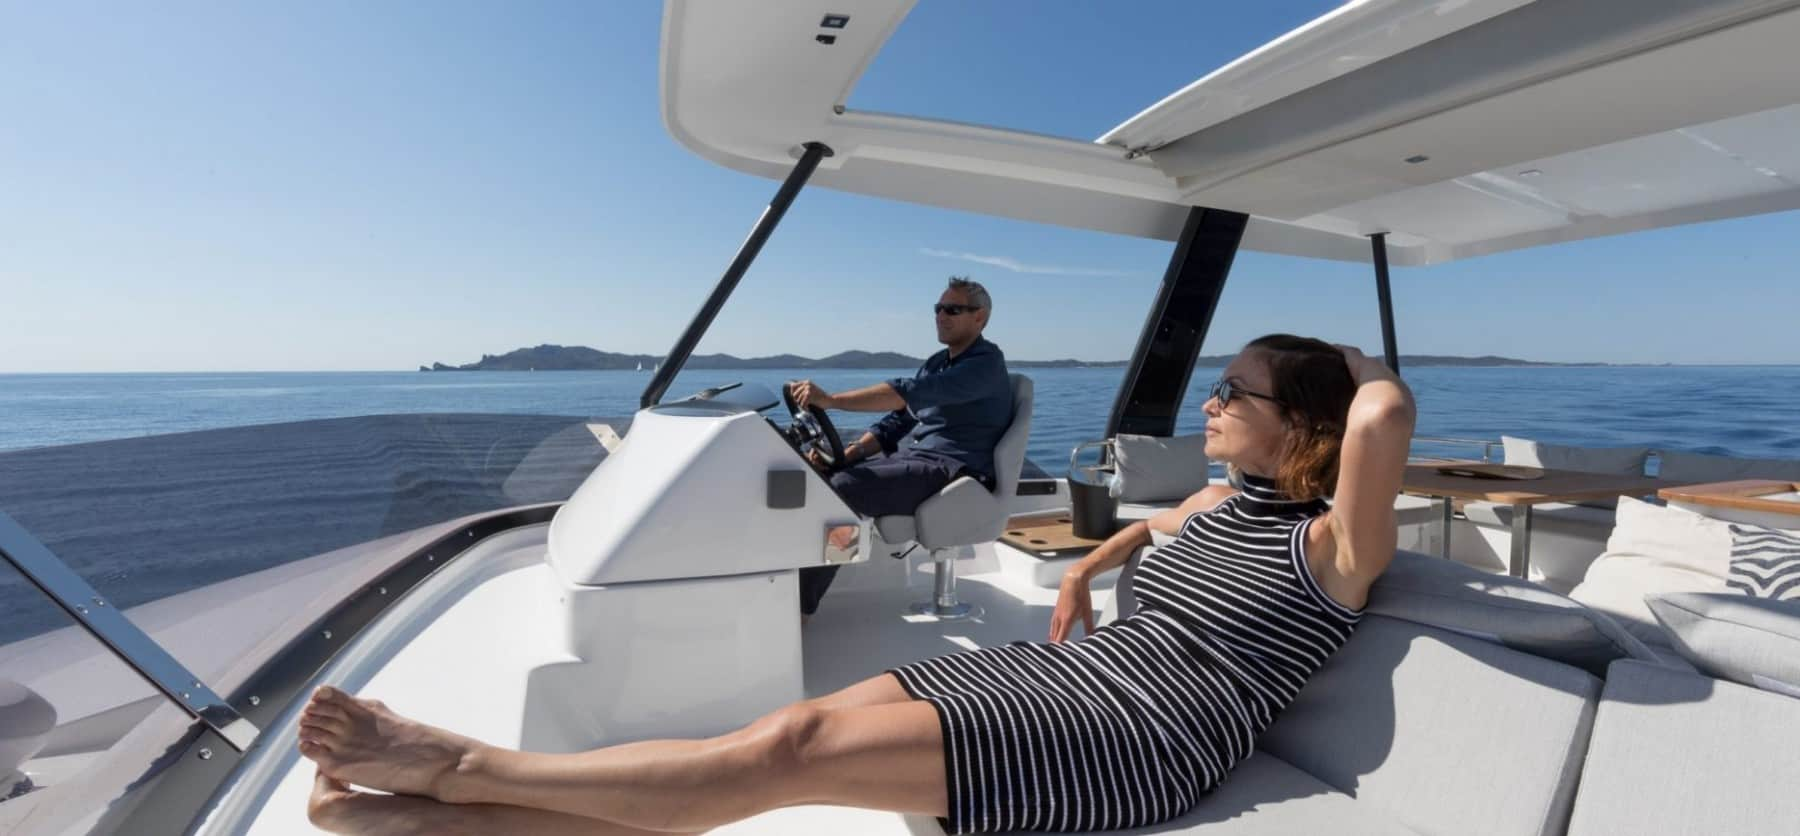 A man at the steering wheel on the flybridge of Fountaine Pajot MY 44 while a woman sits next to him relaxing and enjoys the breeze of the ocean